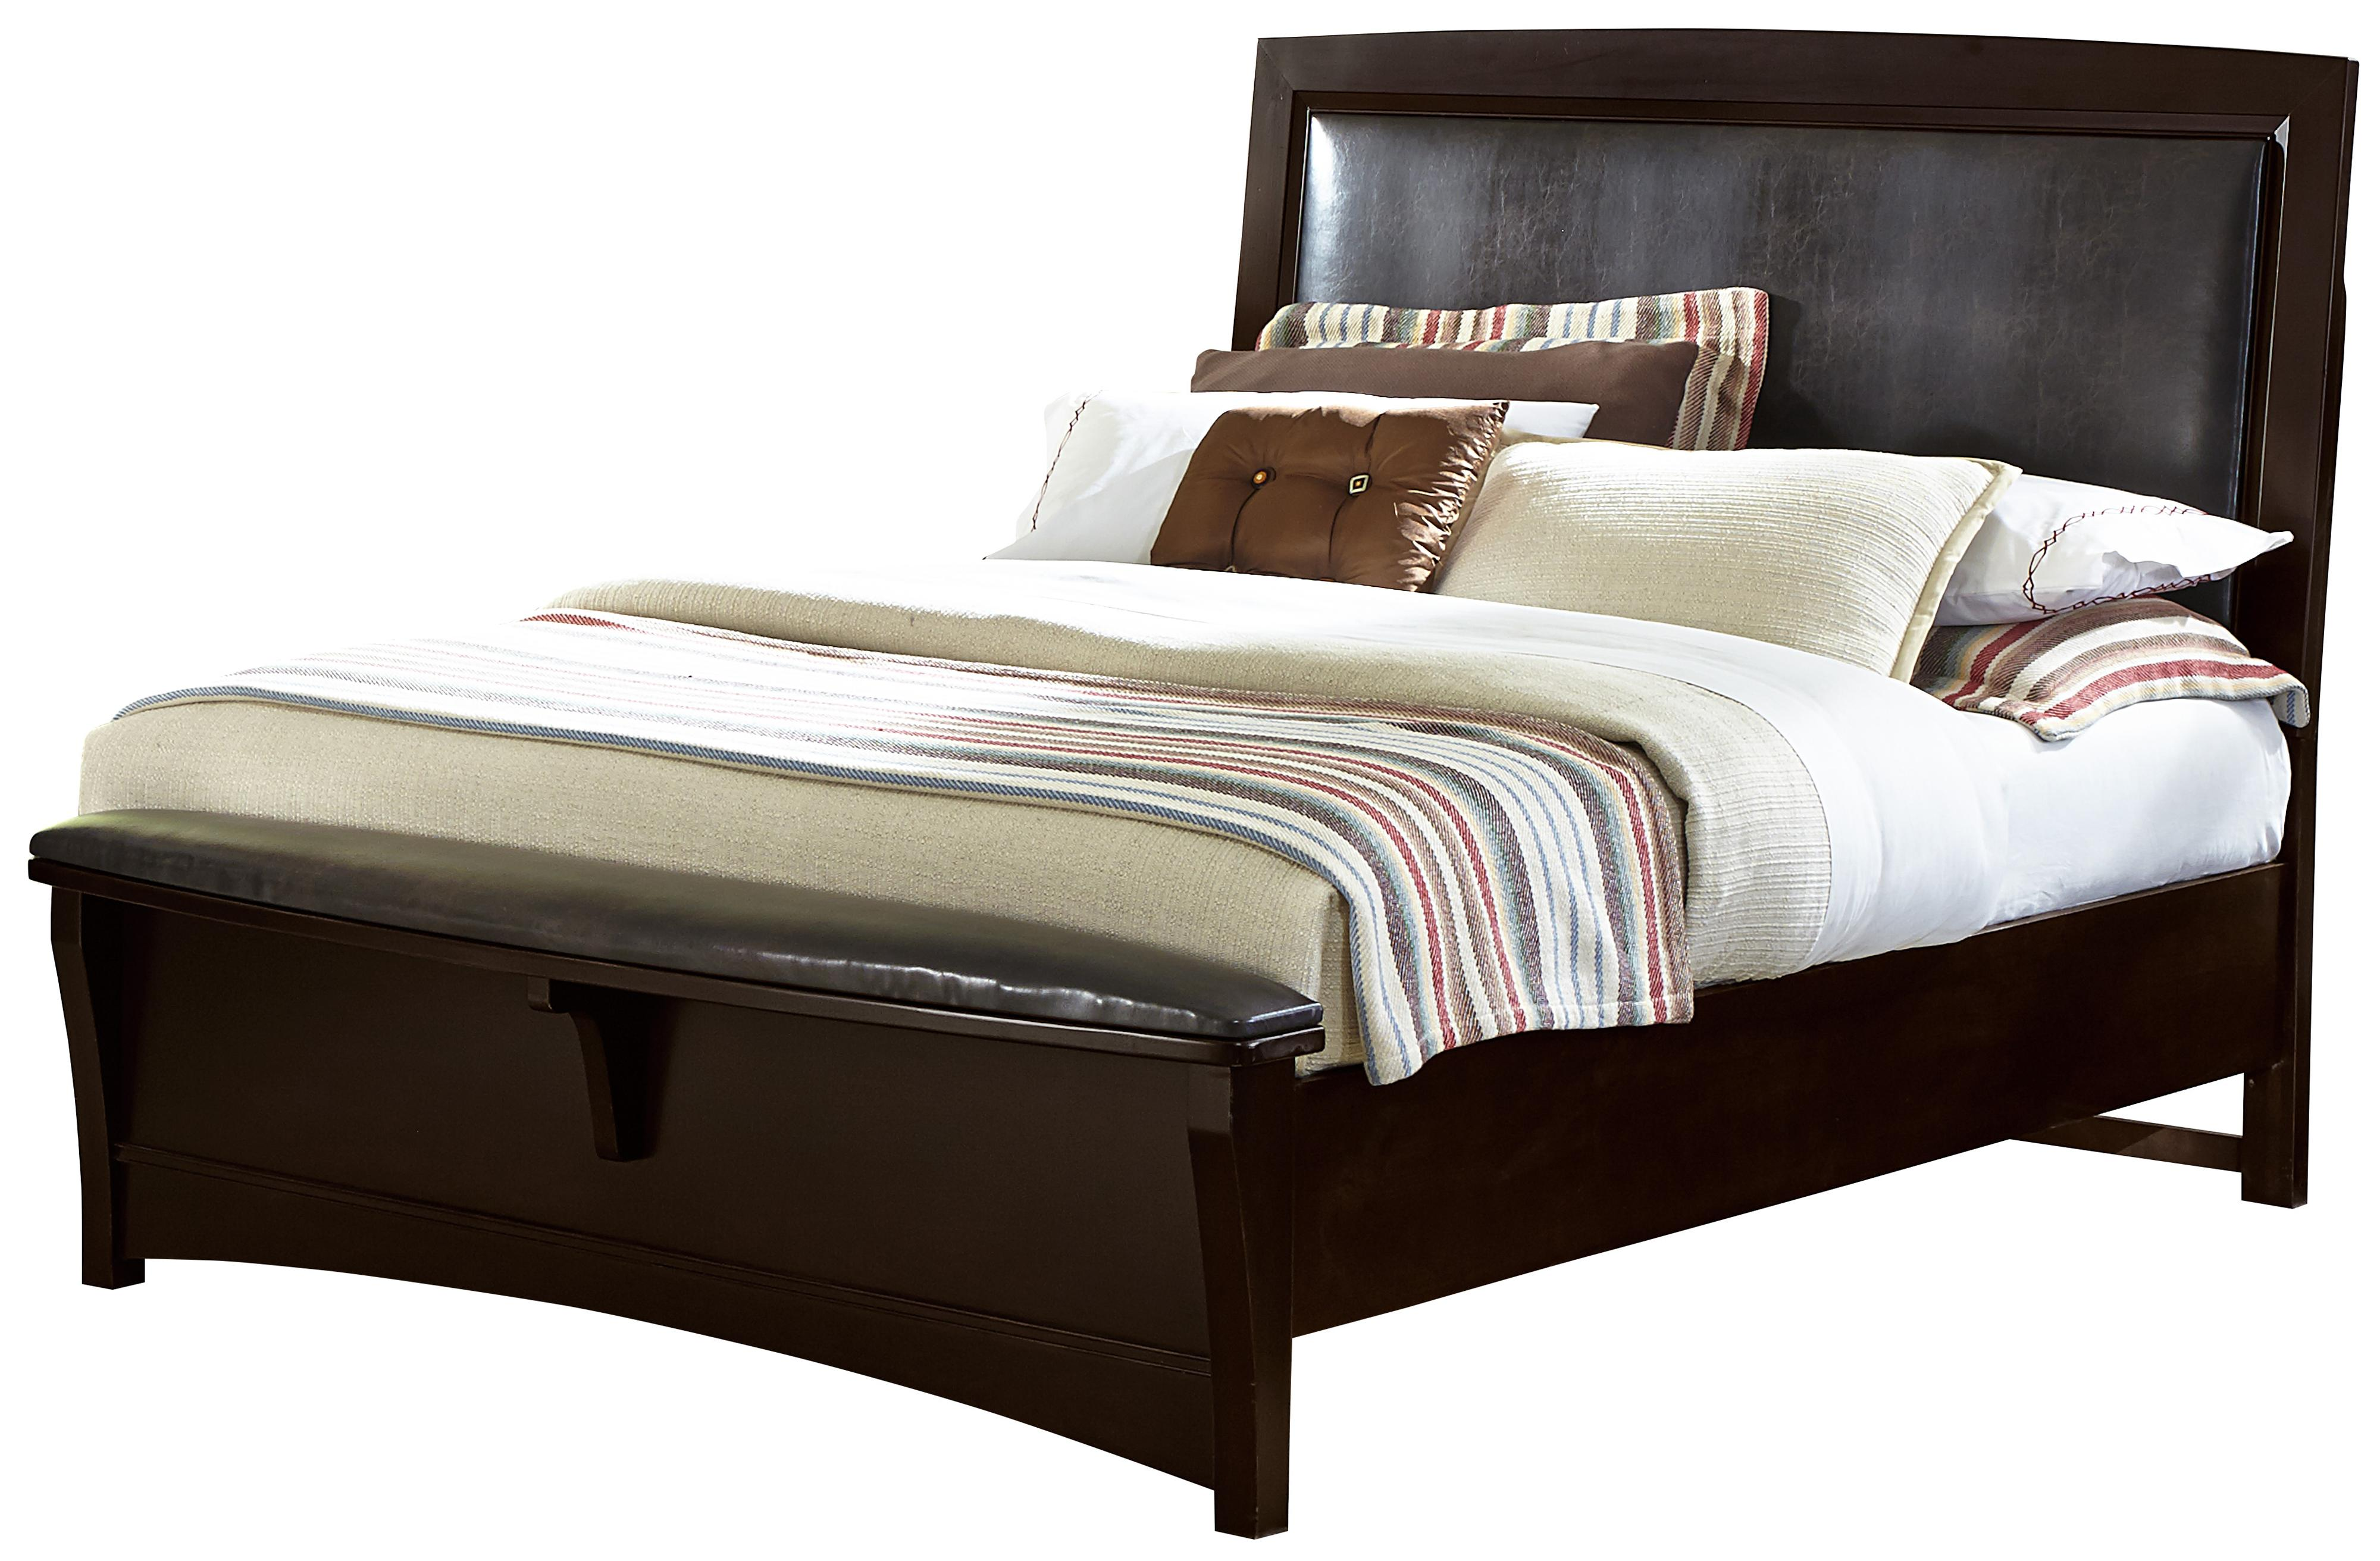 Vaughan Bassett Transitions King Upholstered Bed, Bonded Leather - Item Number: BB67-669+966+922+MS1